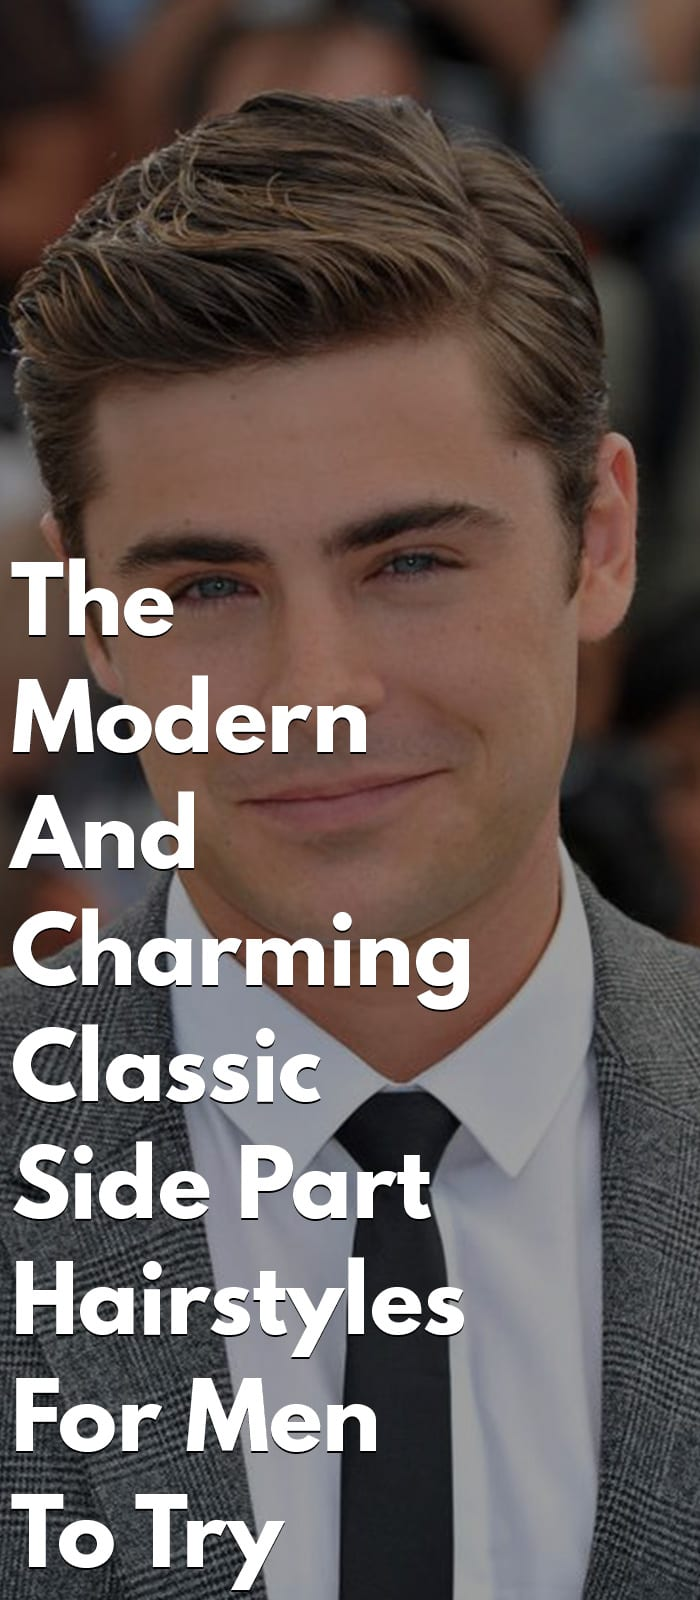 Classic Side Part Hairstyles For Men To Try